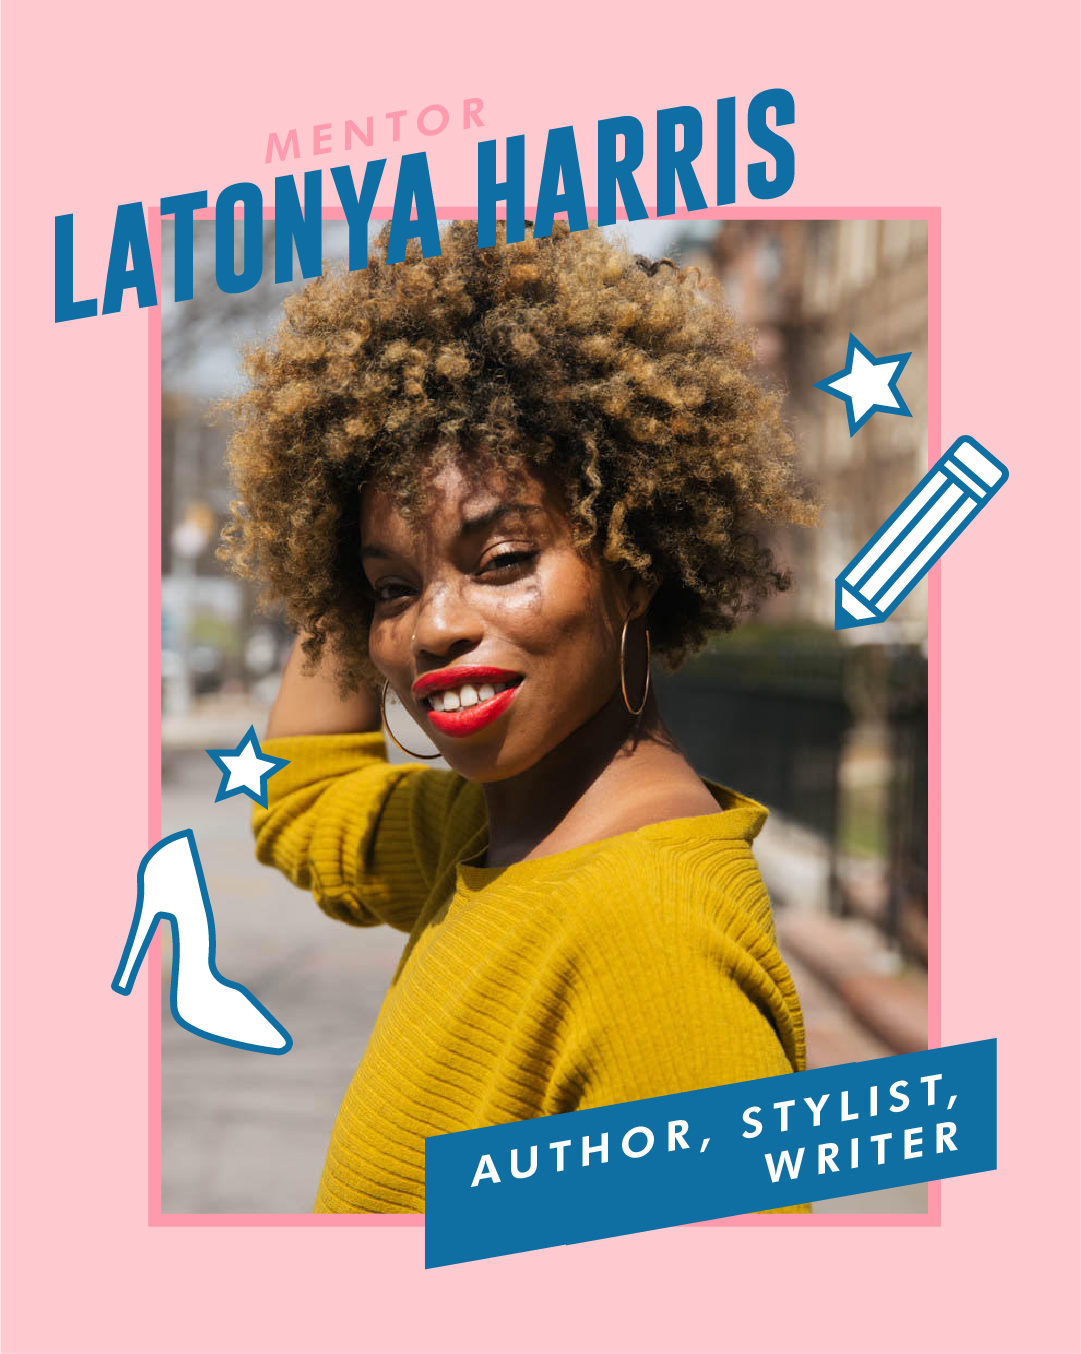 NYC_MentorSelection_LaTonyaHarris.png